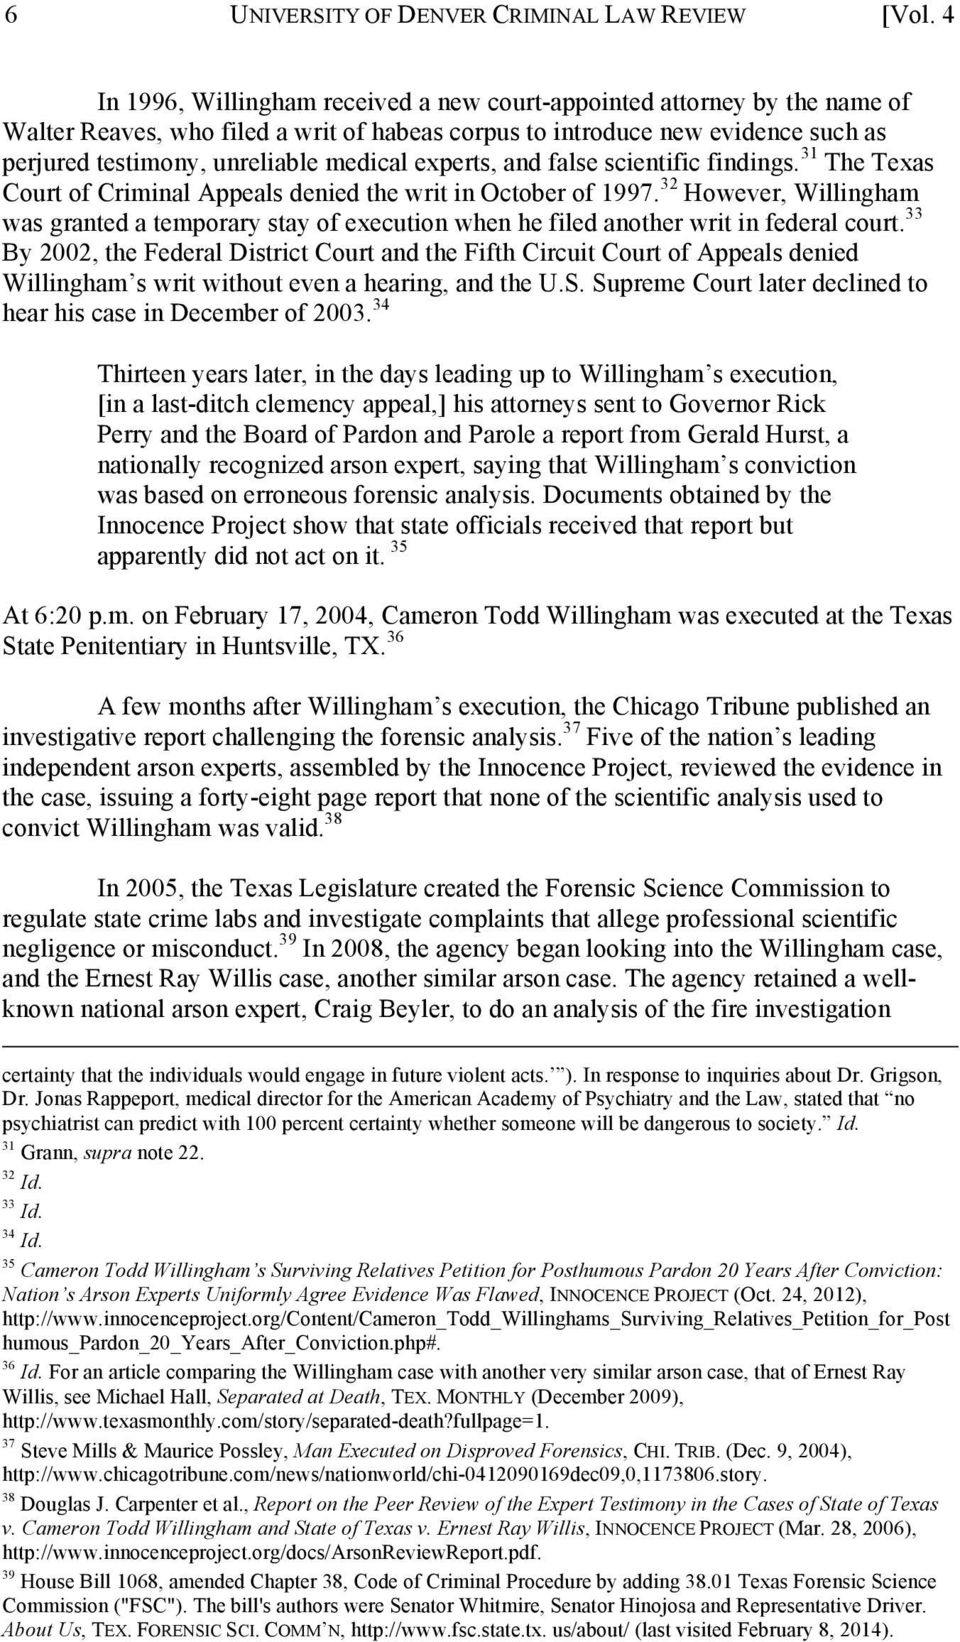 experts, and false scientific findings. 31 The Texas Court of Criminal Appeals denied the writ in October of 1997.